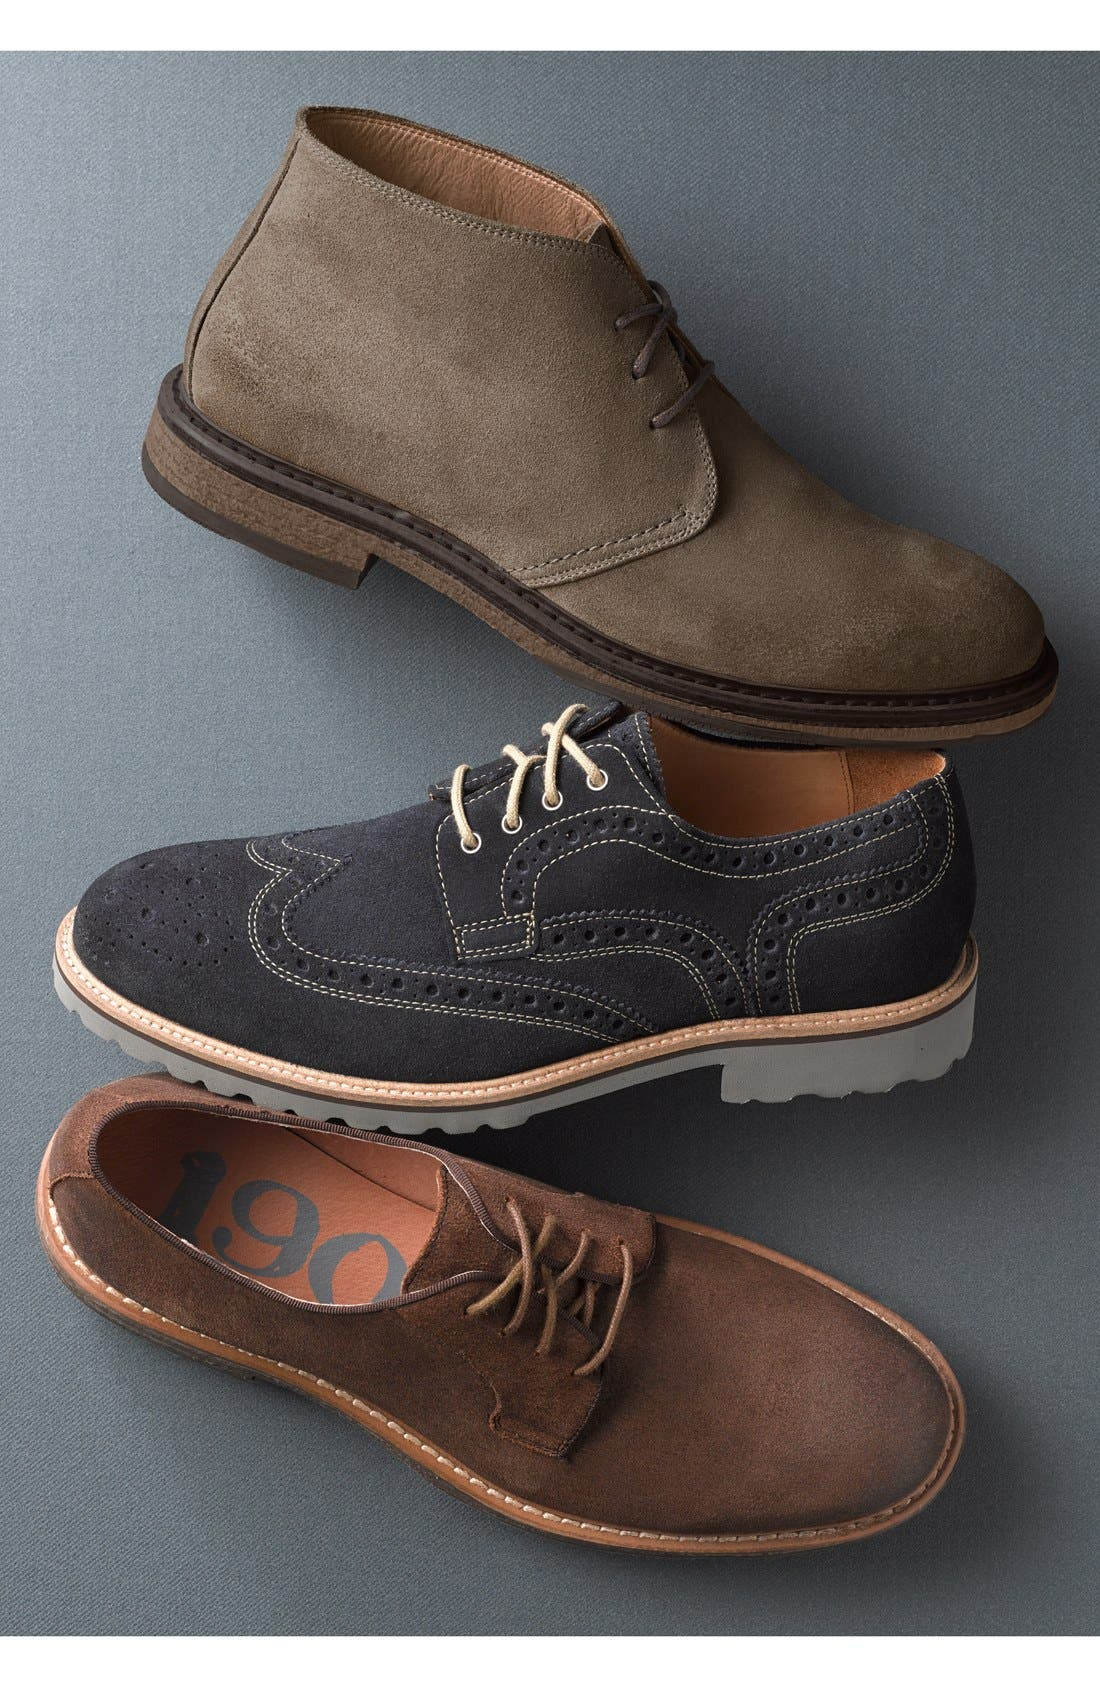 'Canyon' Chukka Boot,                             Alternate thumbnail 25, color,